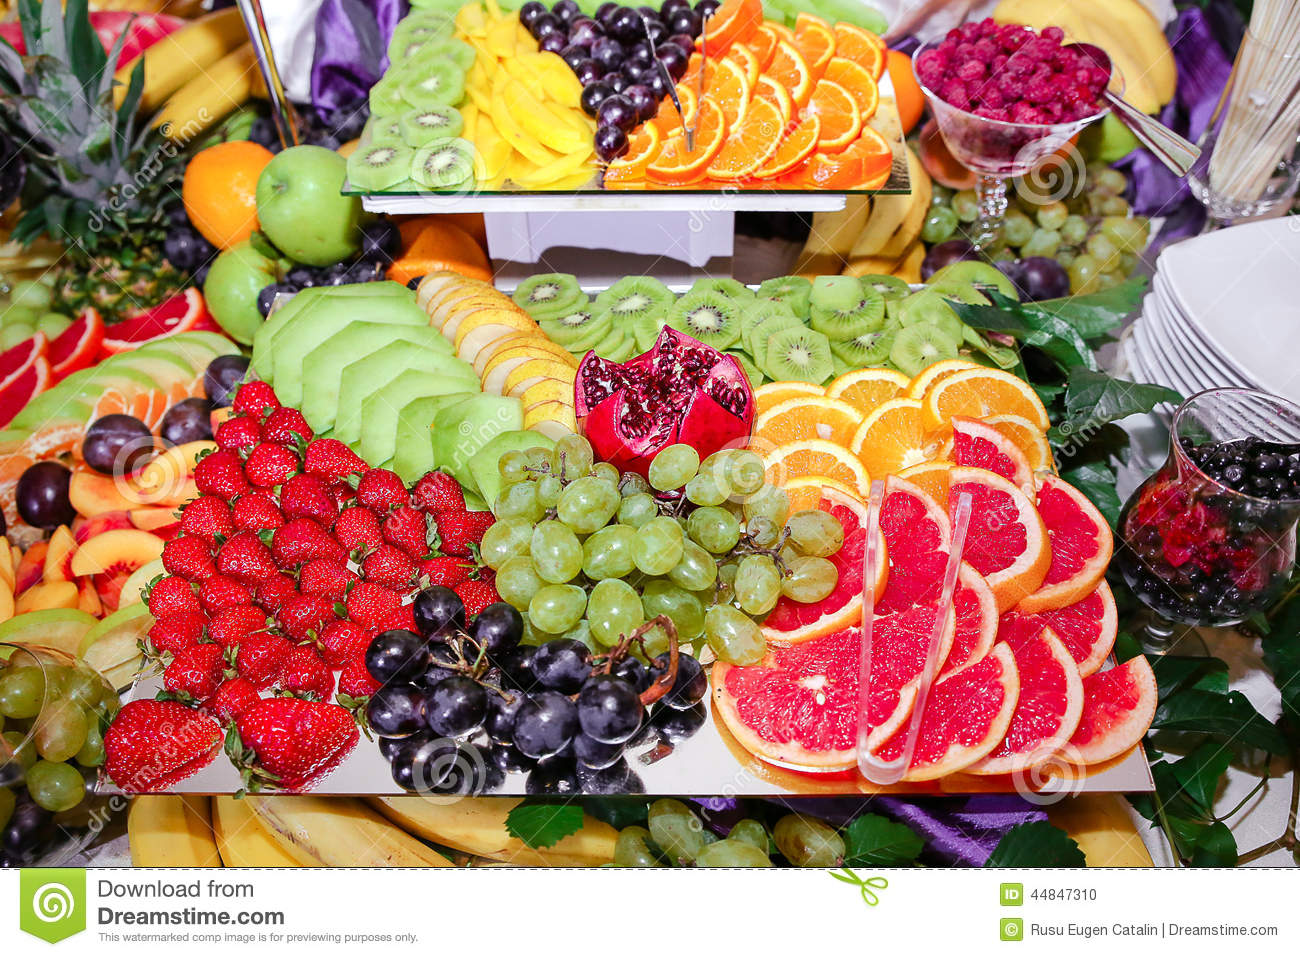 fruits decoration stock photo image of table decorations 44847310. Black Bedroom Furniture Sets. Home Design Ideas